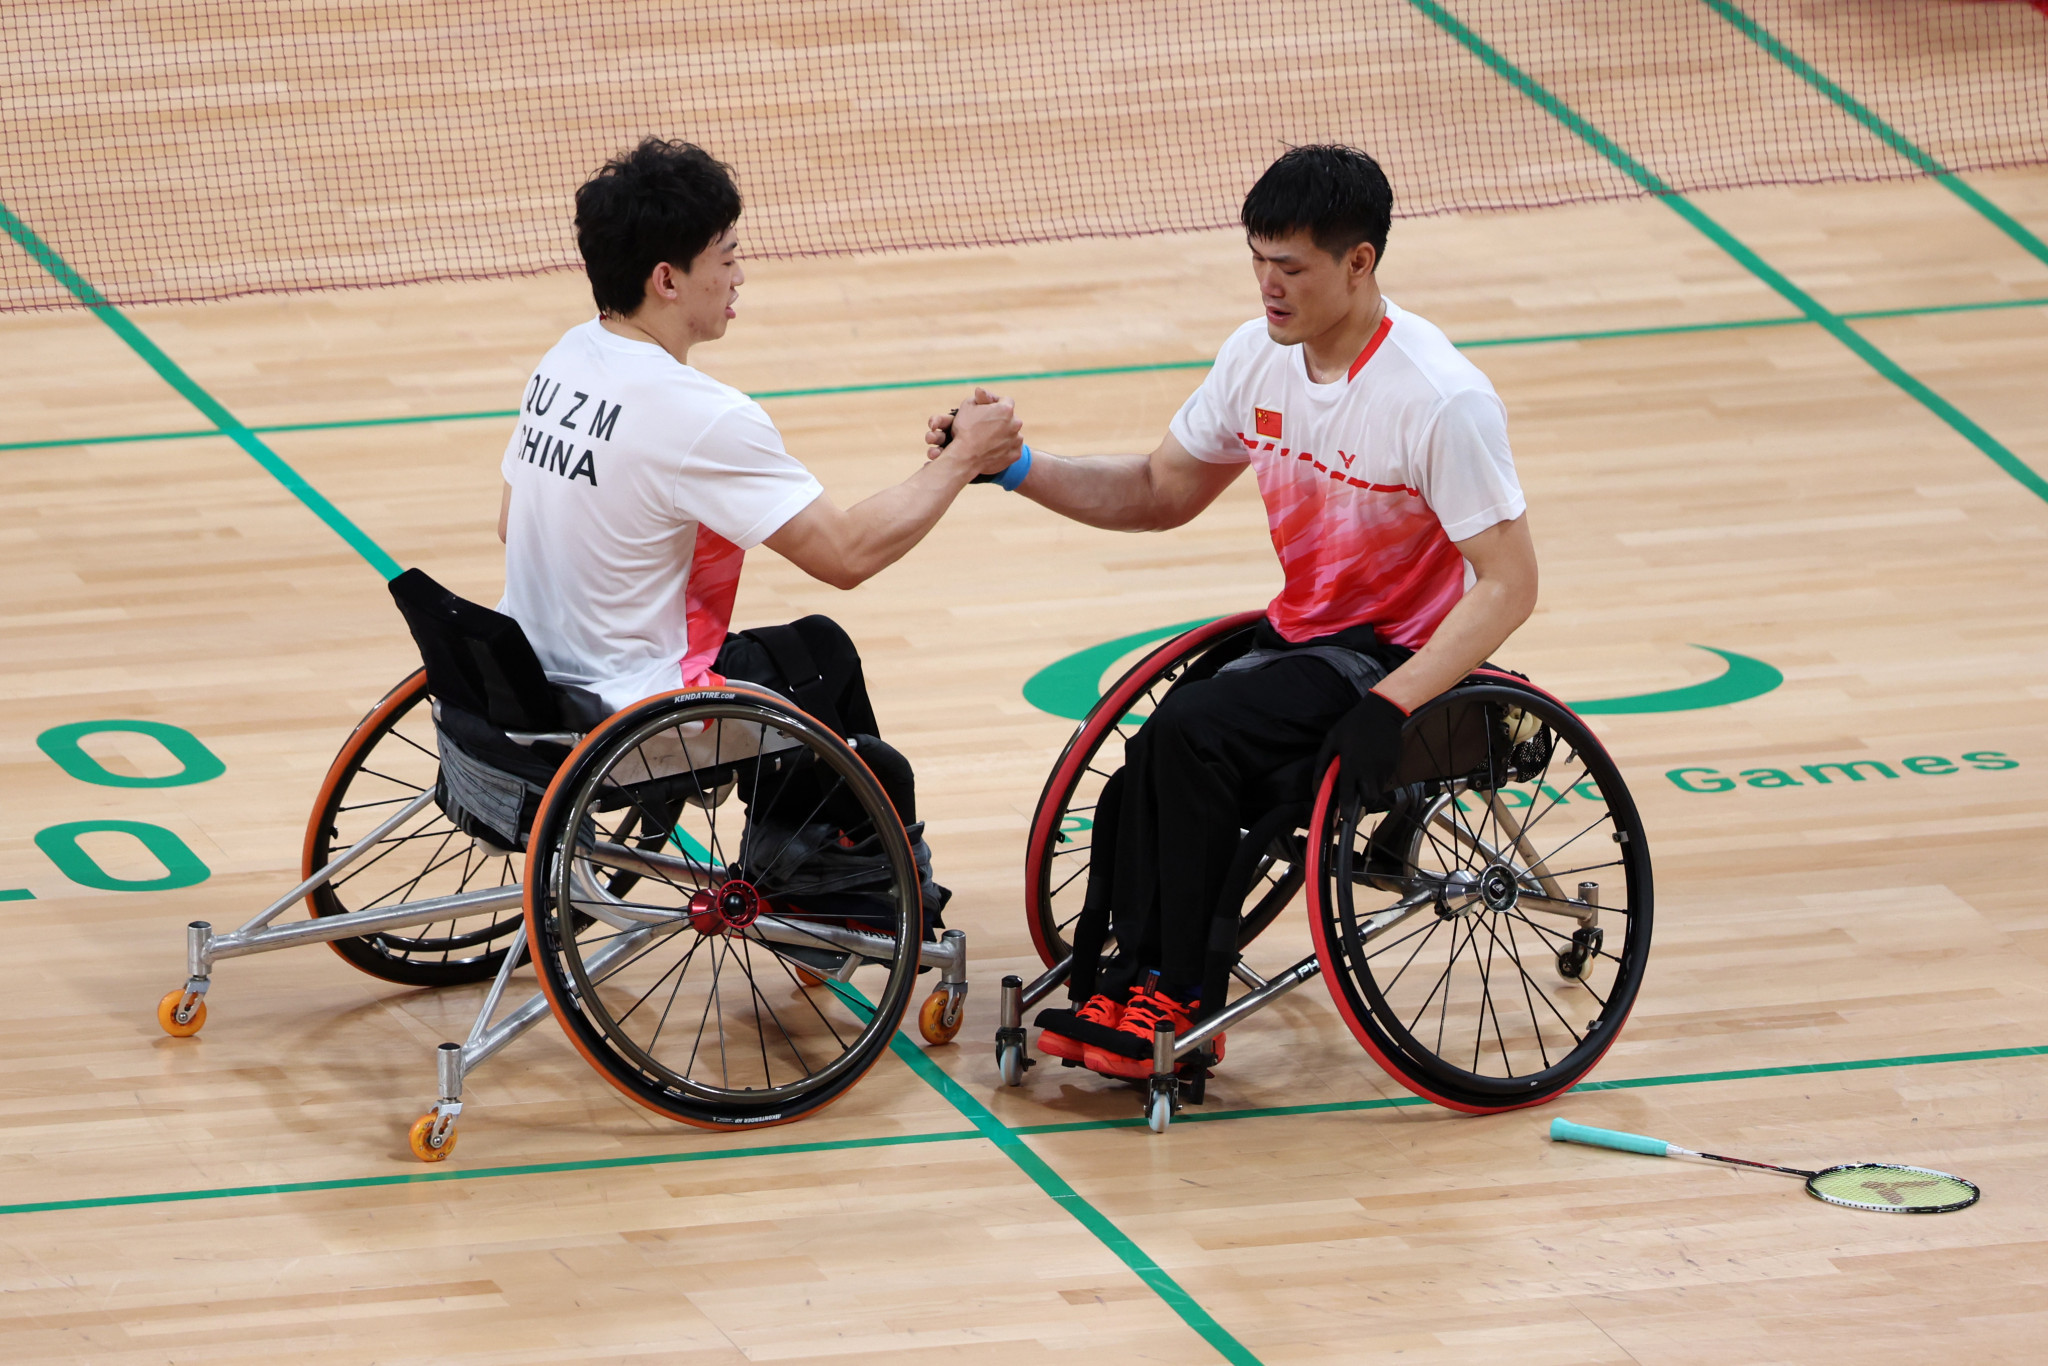 China's Qu Zimo and Mai Jianpeng were among the winners in para badminton on the final day ©Getty Images